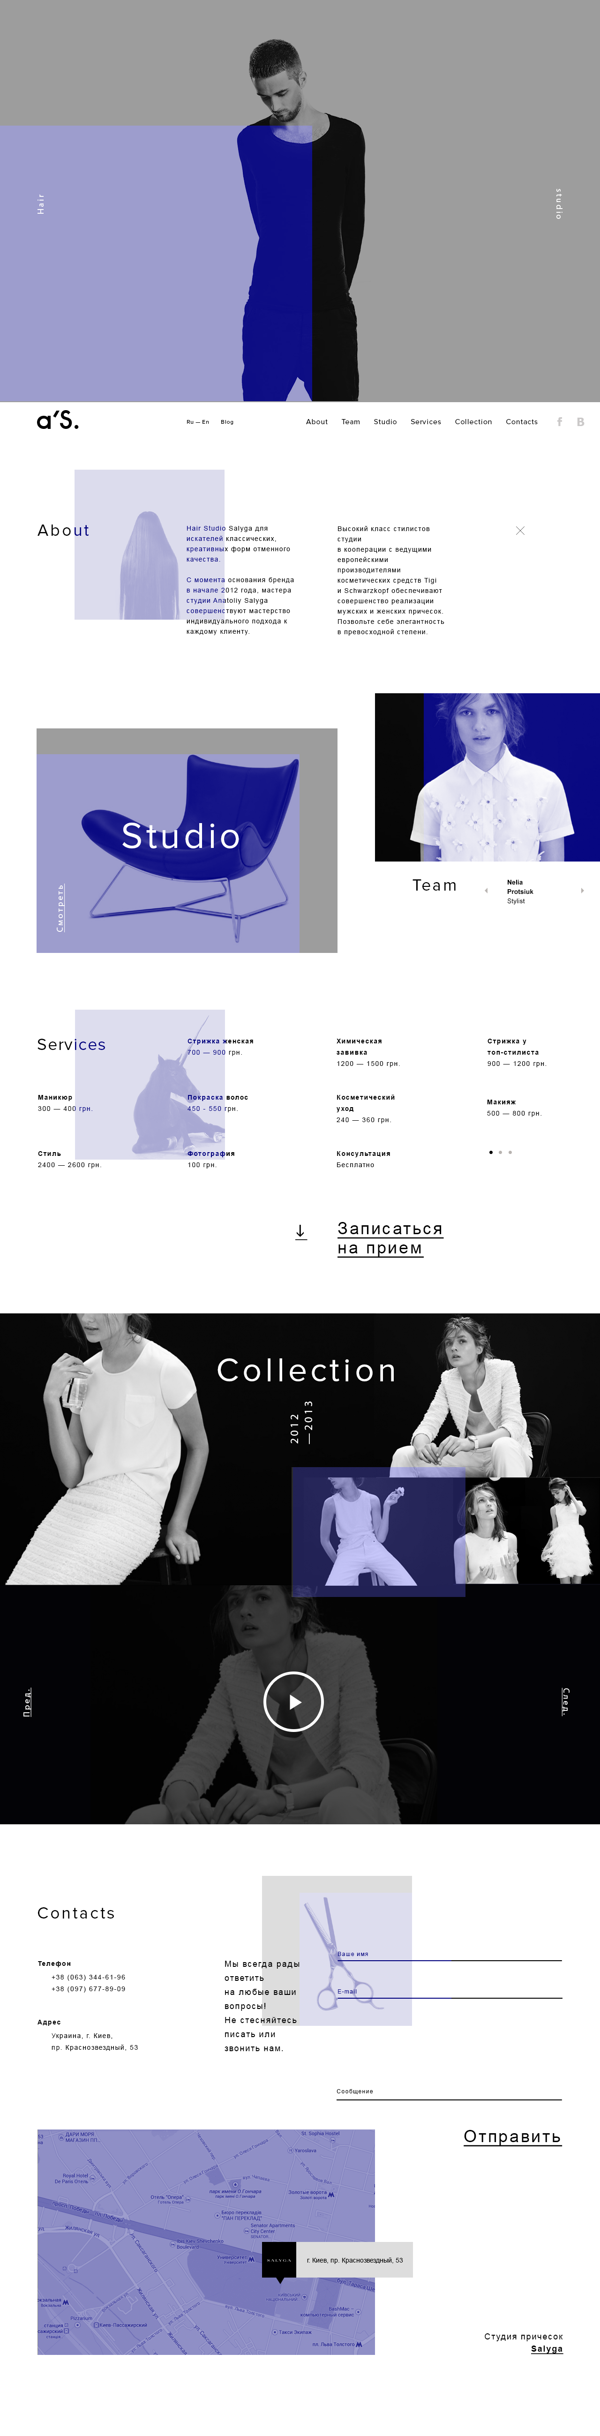 Pin By Norman Paterson On Layout Interactive Design Web Layout Design Digital Design